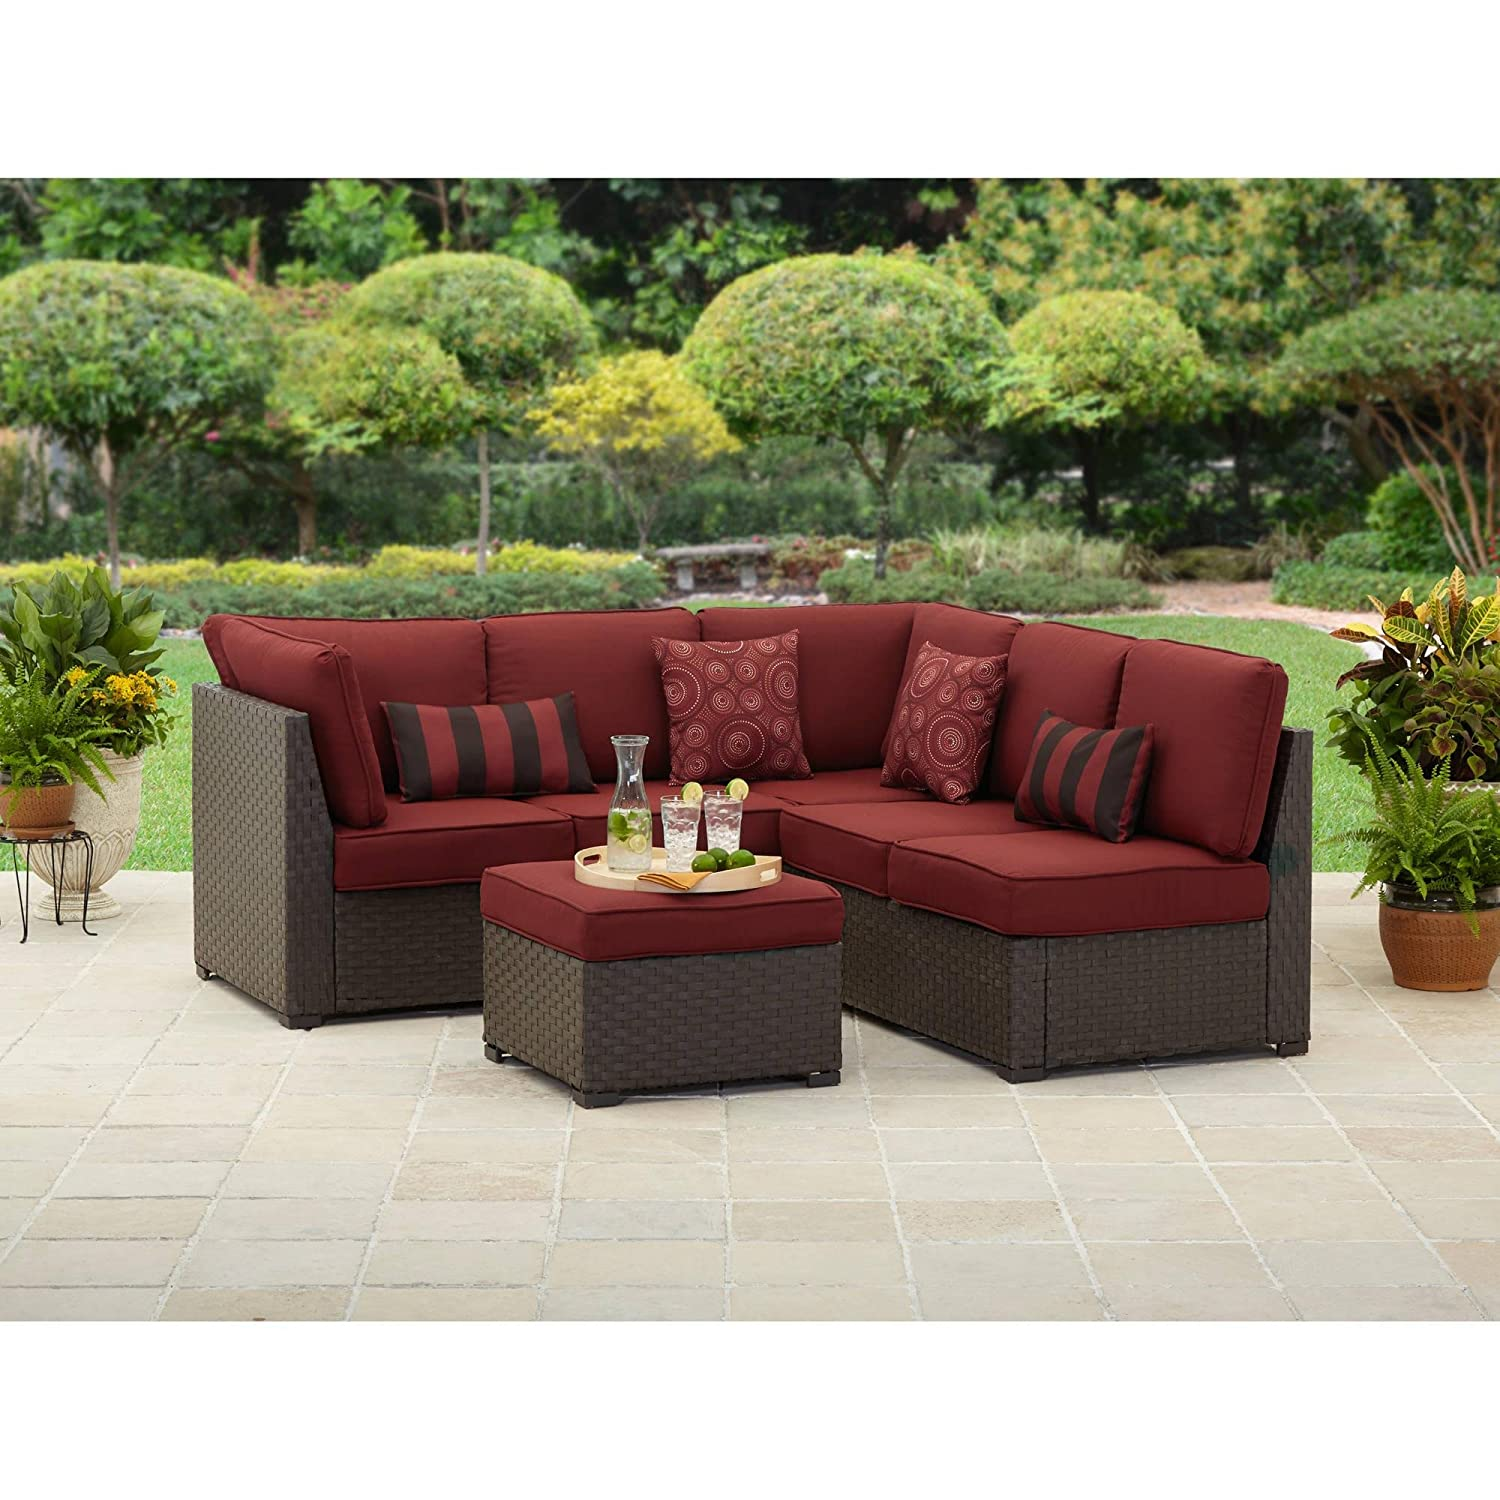 Captivating Amazon.com : Rush Valley 3 Piece Outdoor Sectional Sofa Set, Red, Seats 5 :  Outdoor And Patio Furniture Sets : Garden U0026 Outdoor